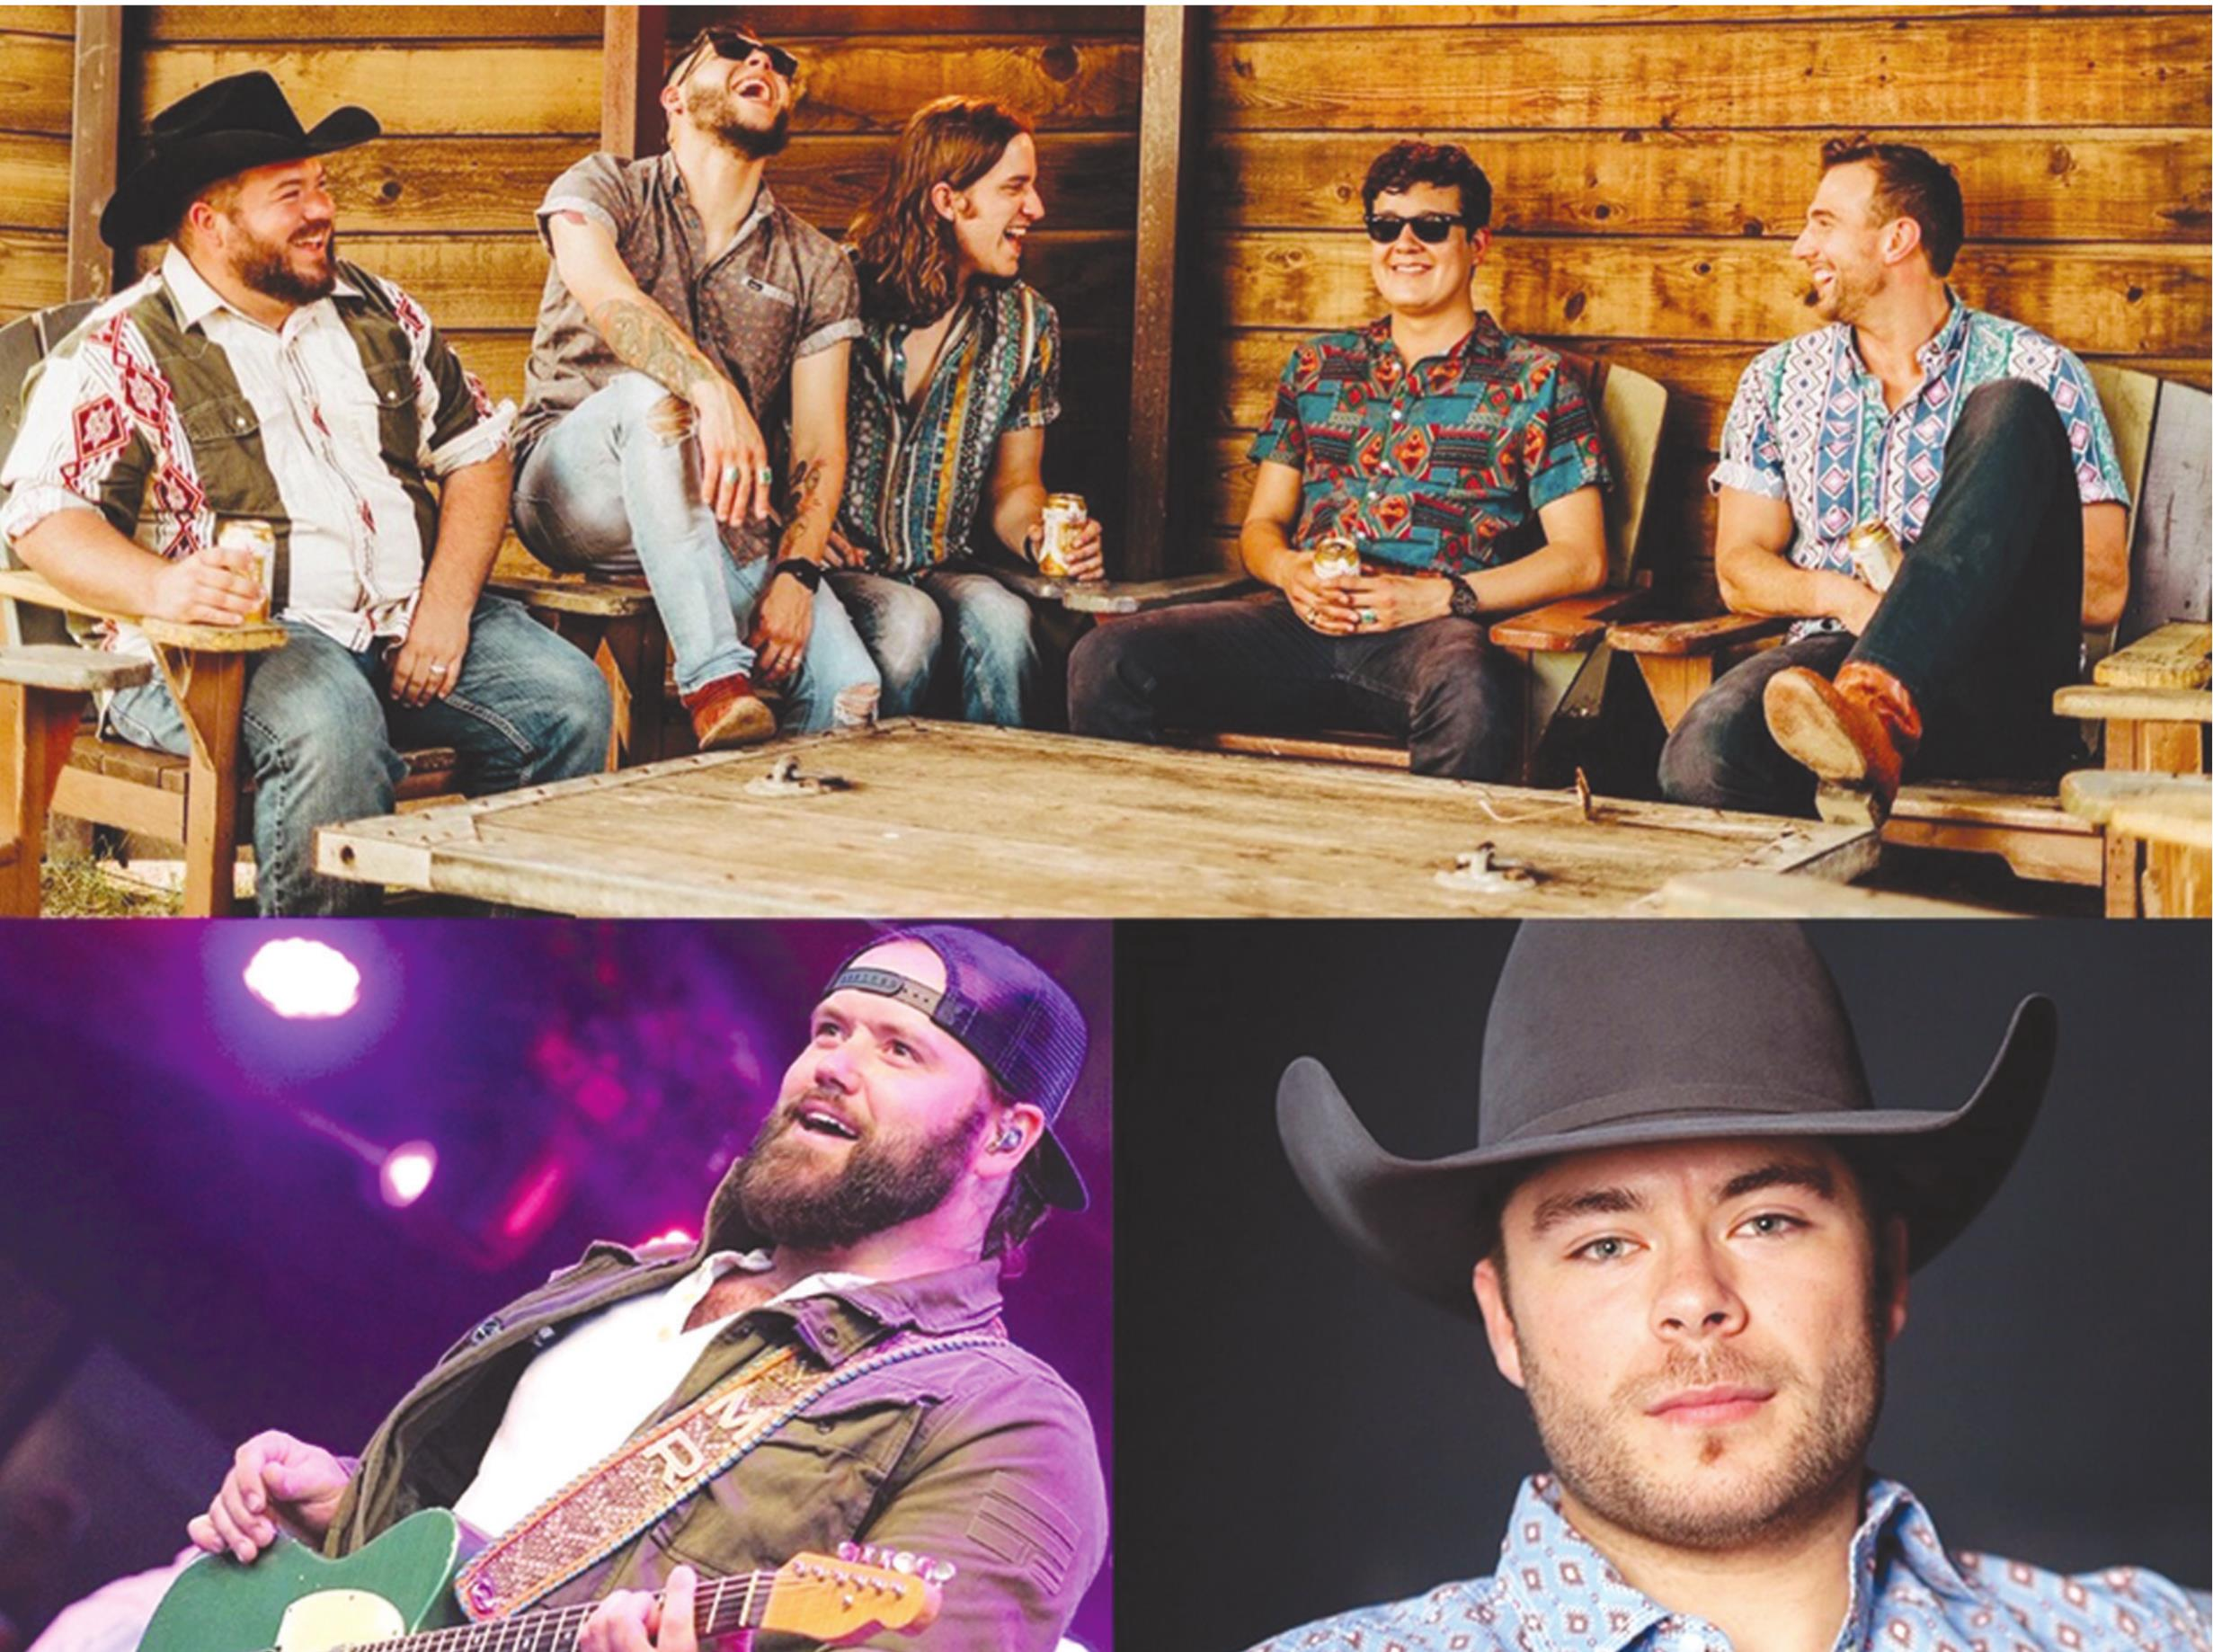 Provided Flatland Cavalry, top, Mike Ryan, bottom left, and Triston Marez will perform at SWOSUpalooza October 22. Flatland Cavalry, Mike Ryan and Triston Marez. SWOSUpalooza 2020 has been rescheduled for Thursday, October 22, during Homecoming Week at Southwestern Oklahoma State University in Weatherford.Tickets are $15 in advance and $20 on the day of the show.